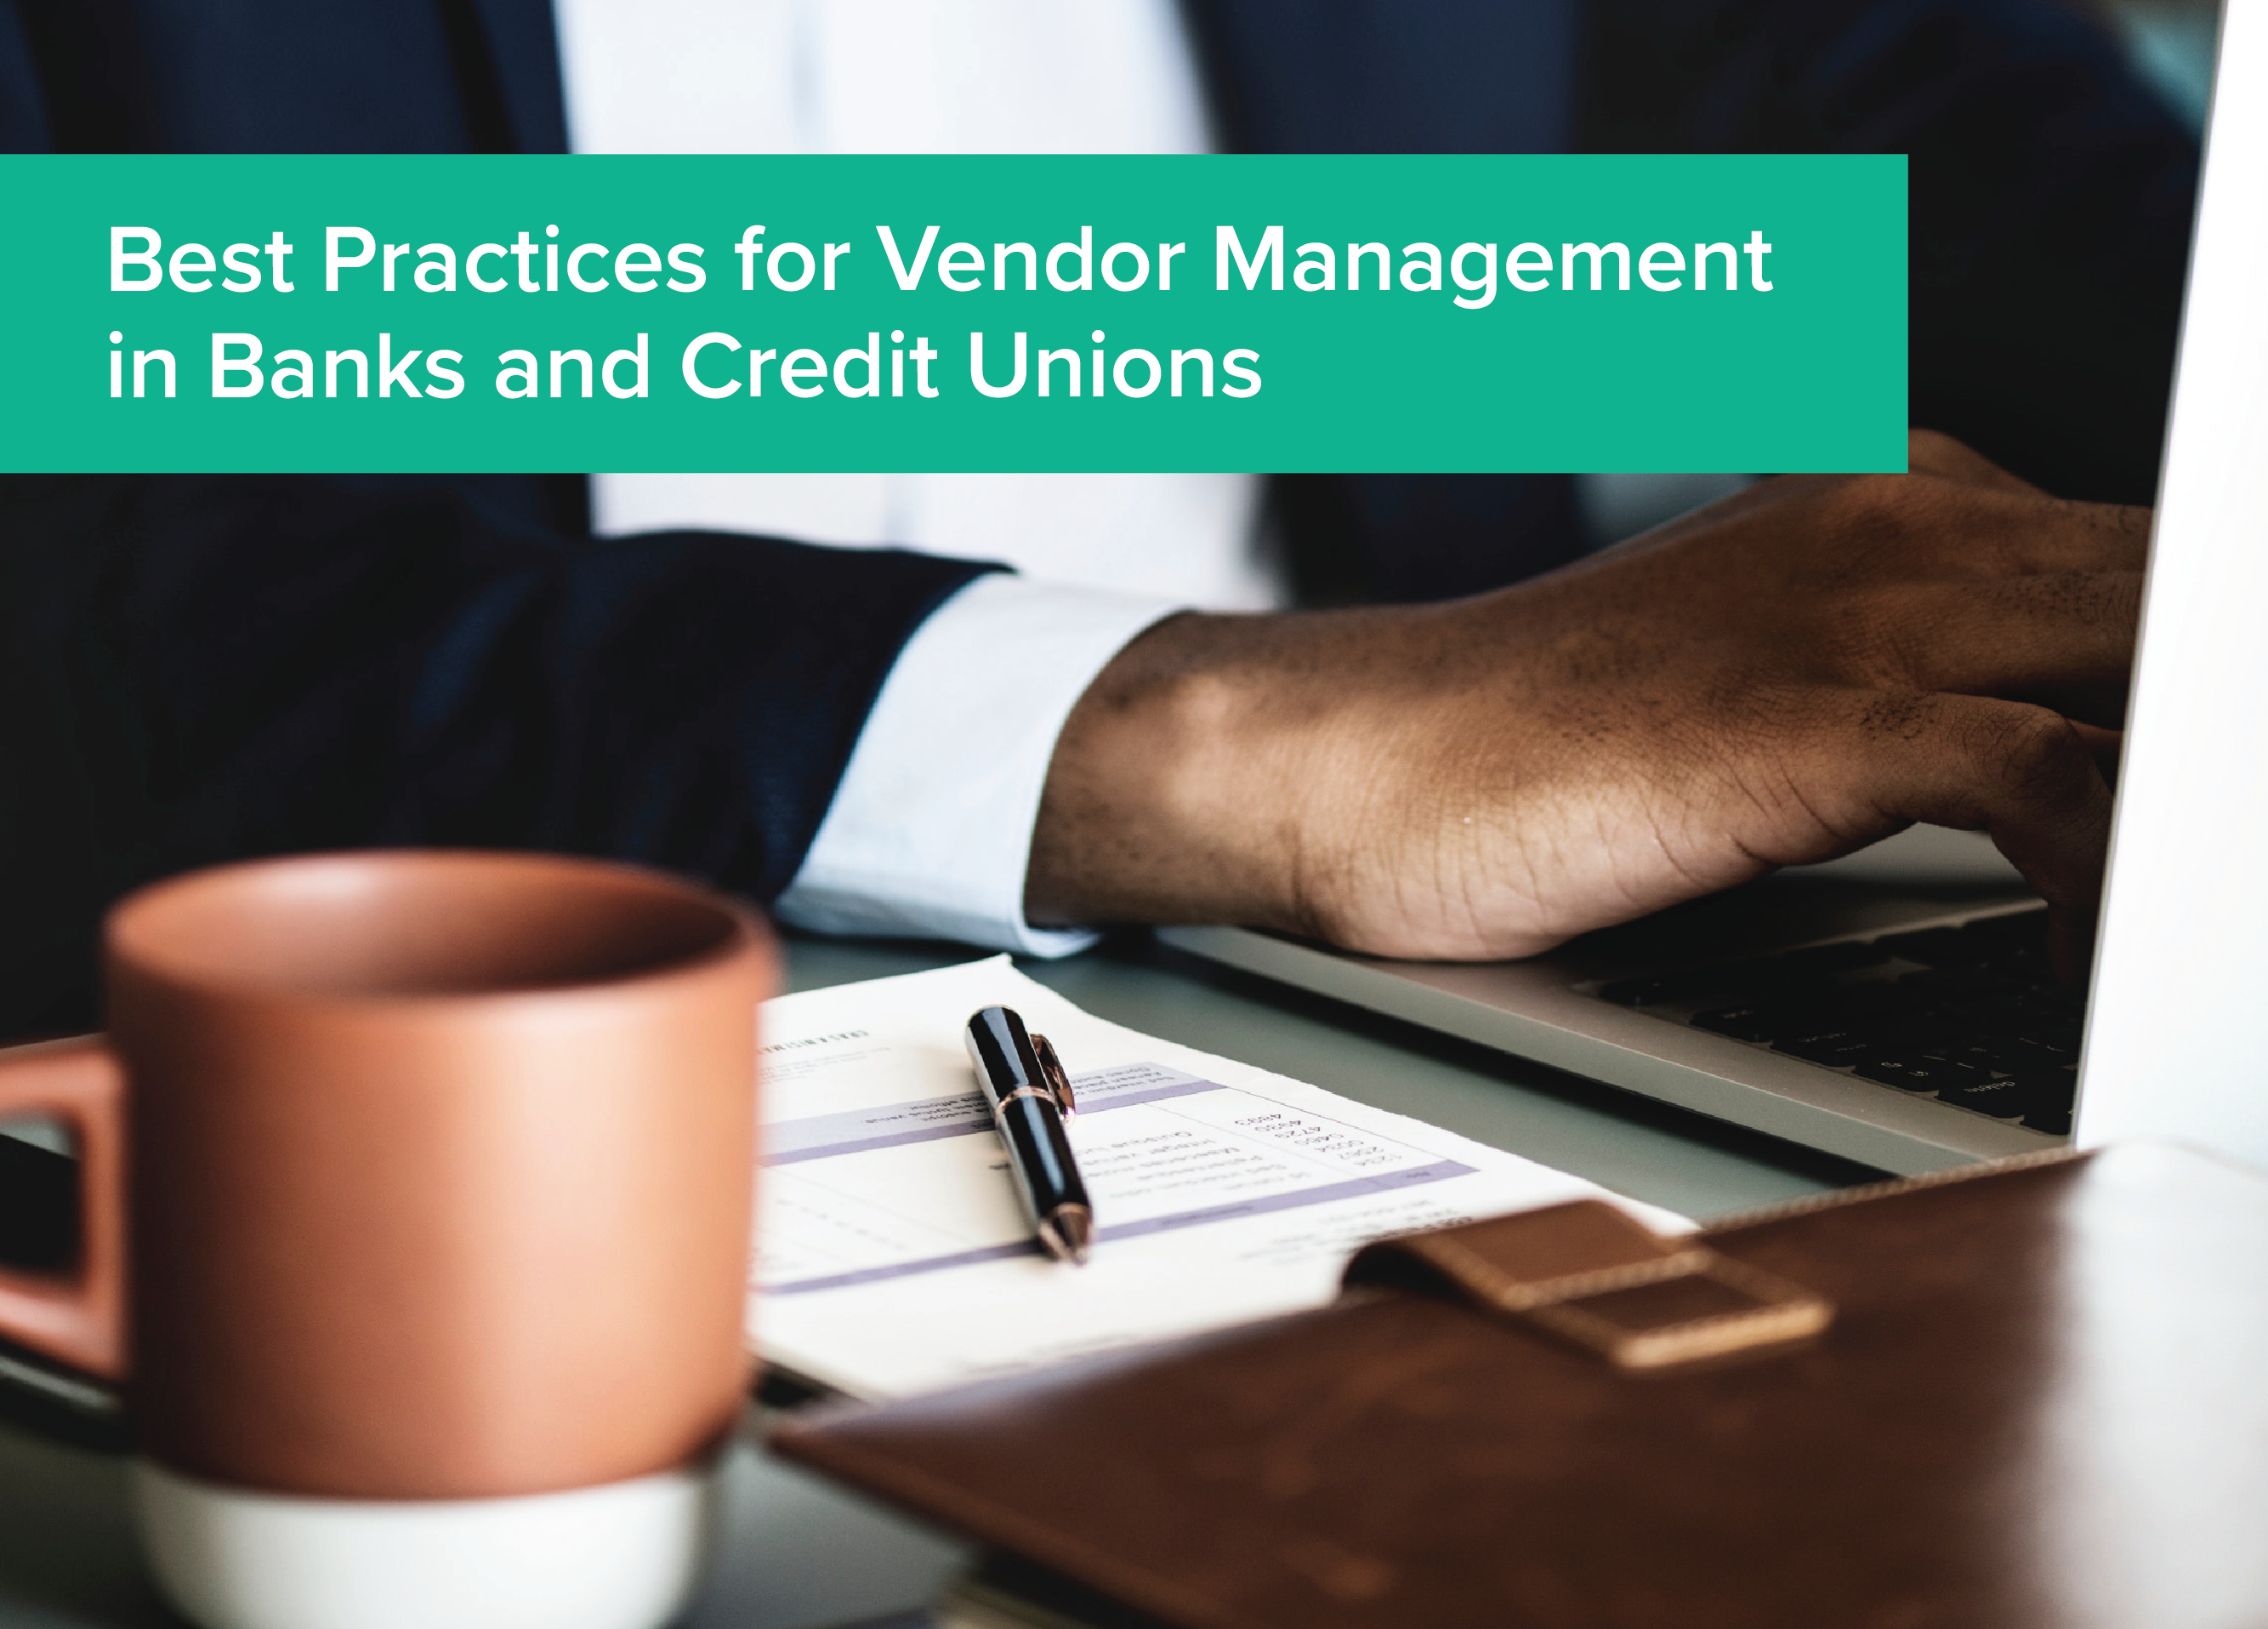 Best Practices for Vendor Management in Banks and Credit Unions